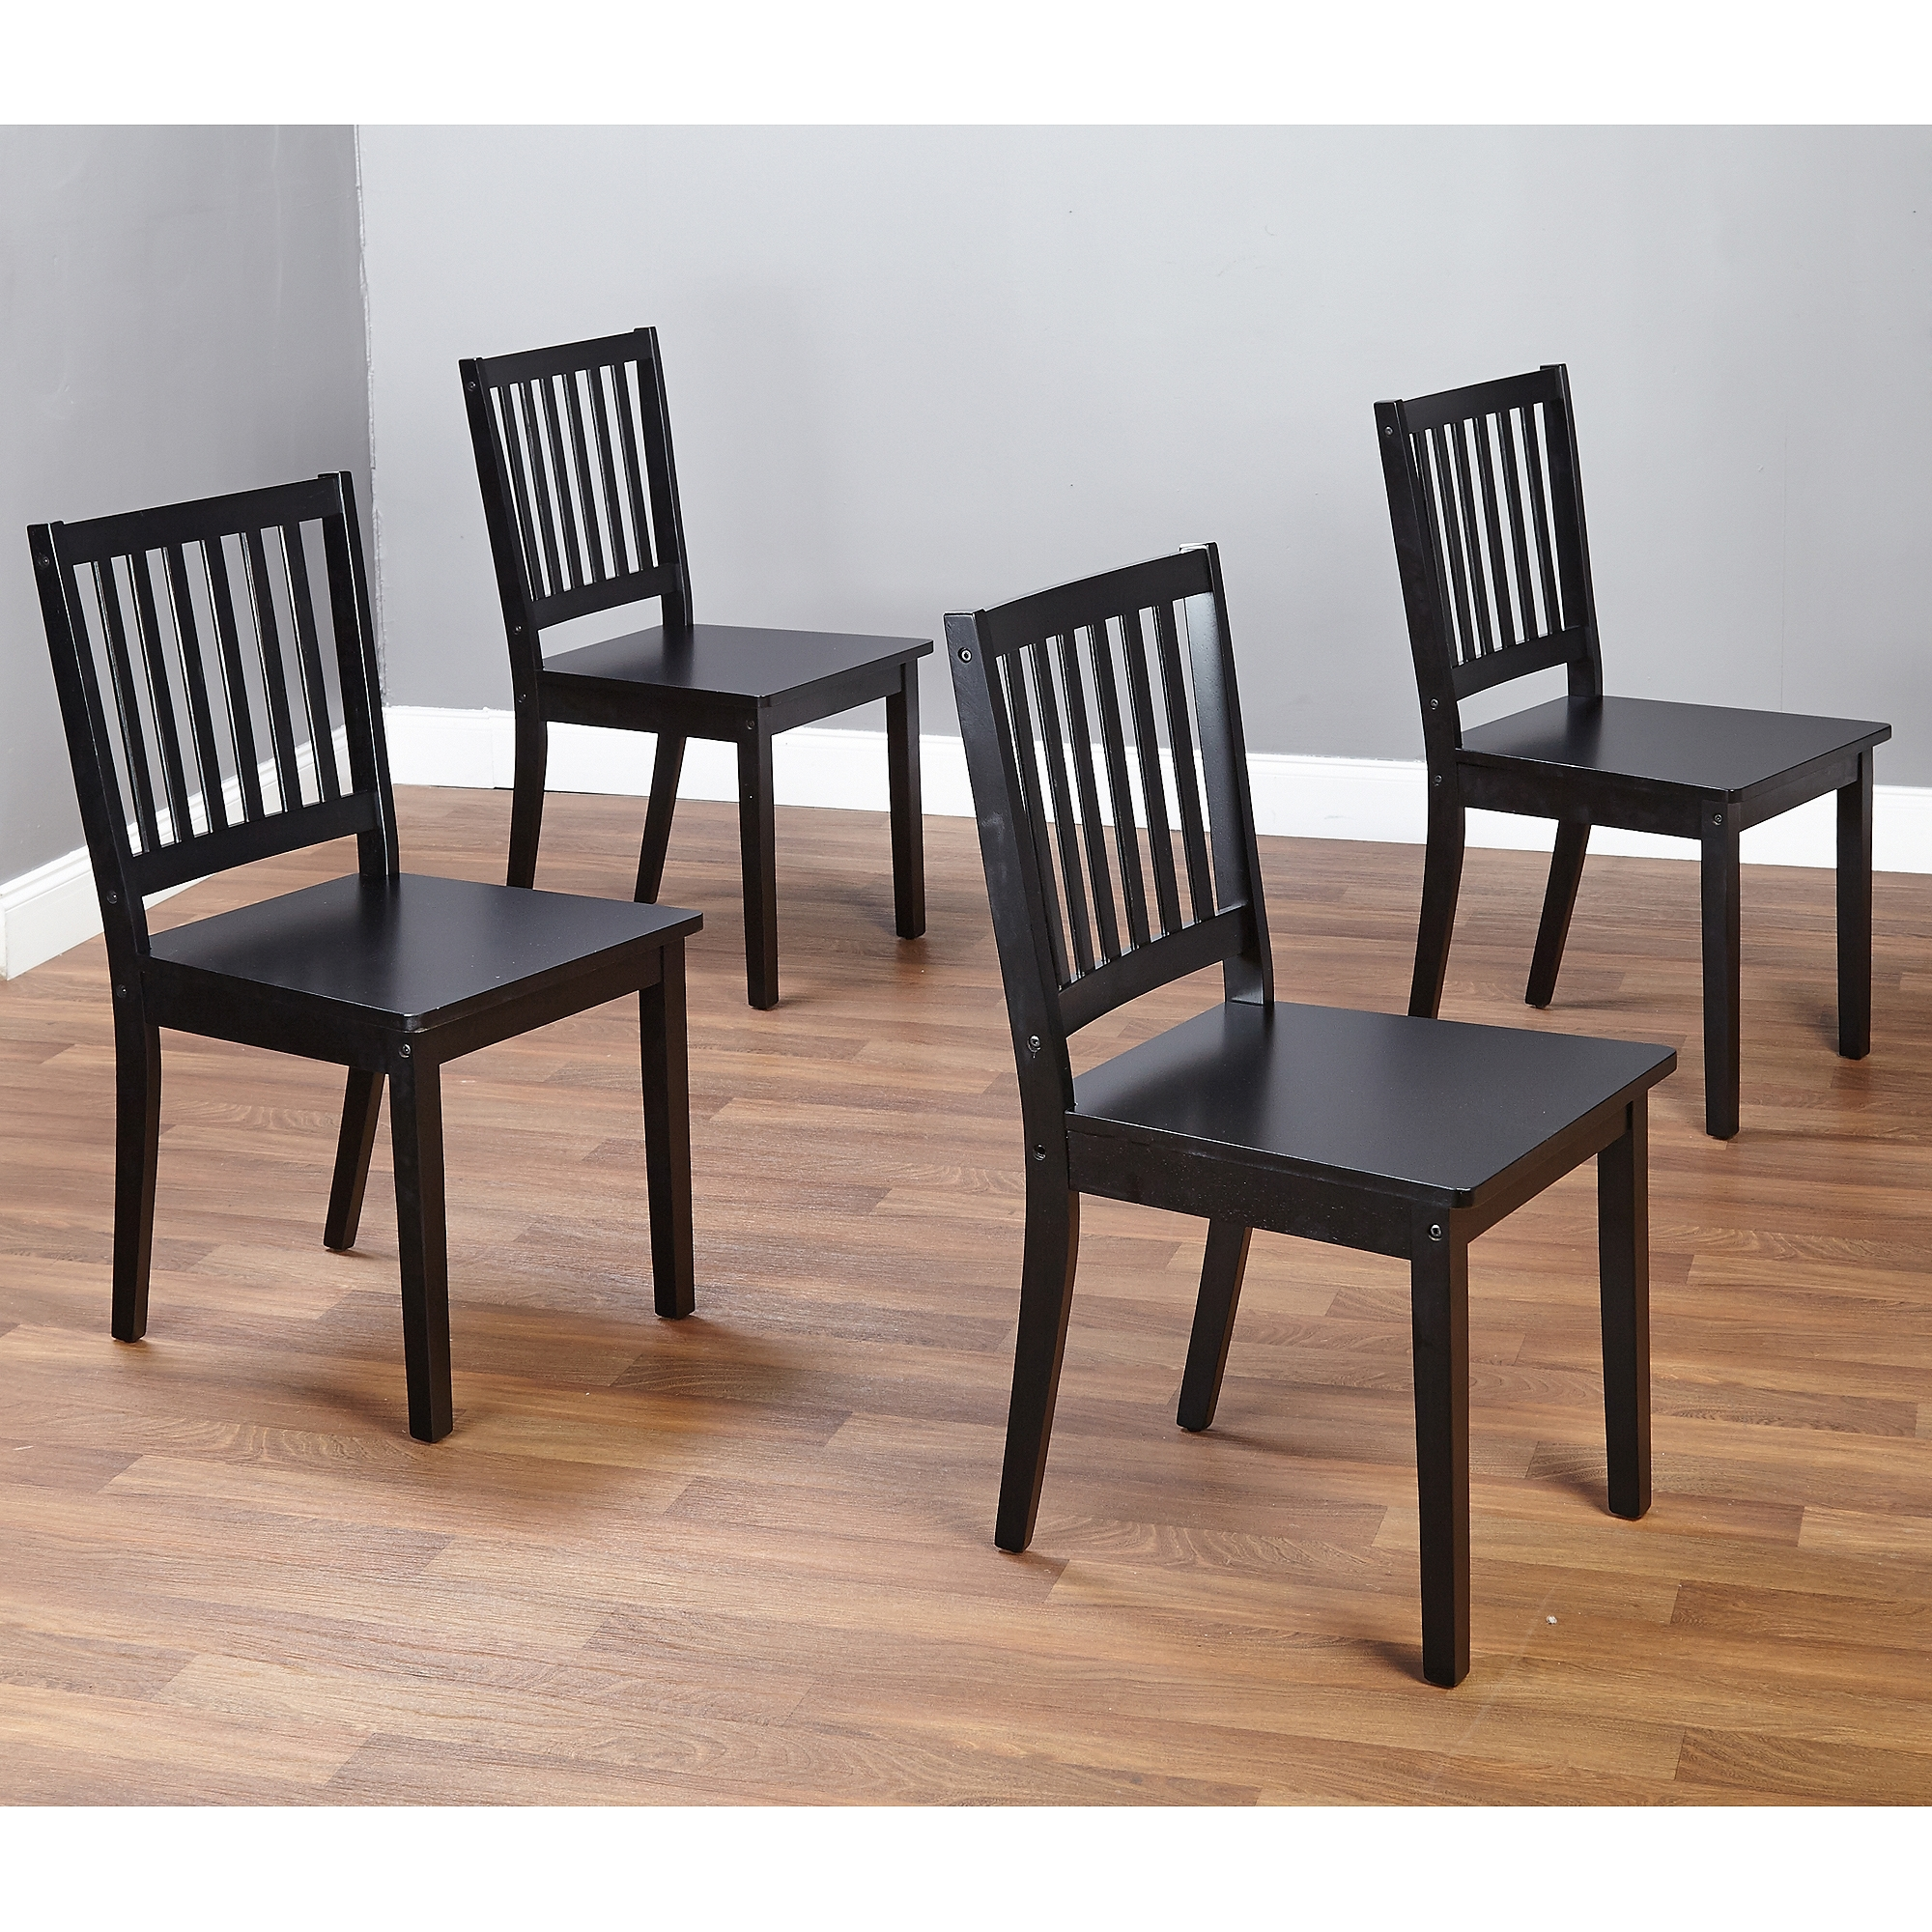 4 Seat Dining Tables Throughout Latest Shaker Dining Chairs, Set Of 4, Espresso – Walmart (Gallery 10 of 25)